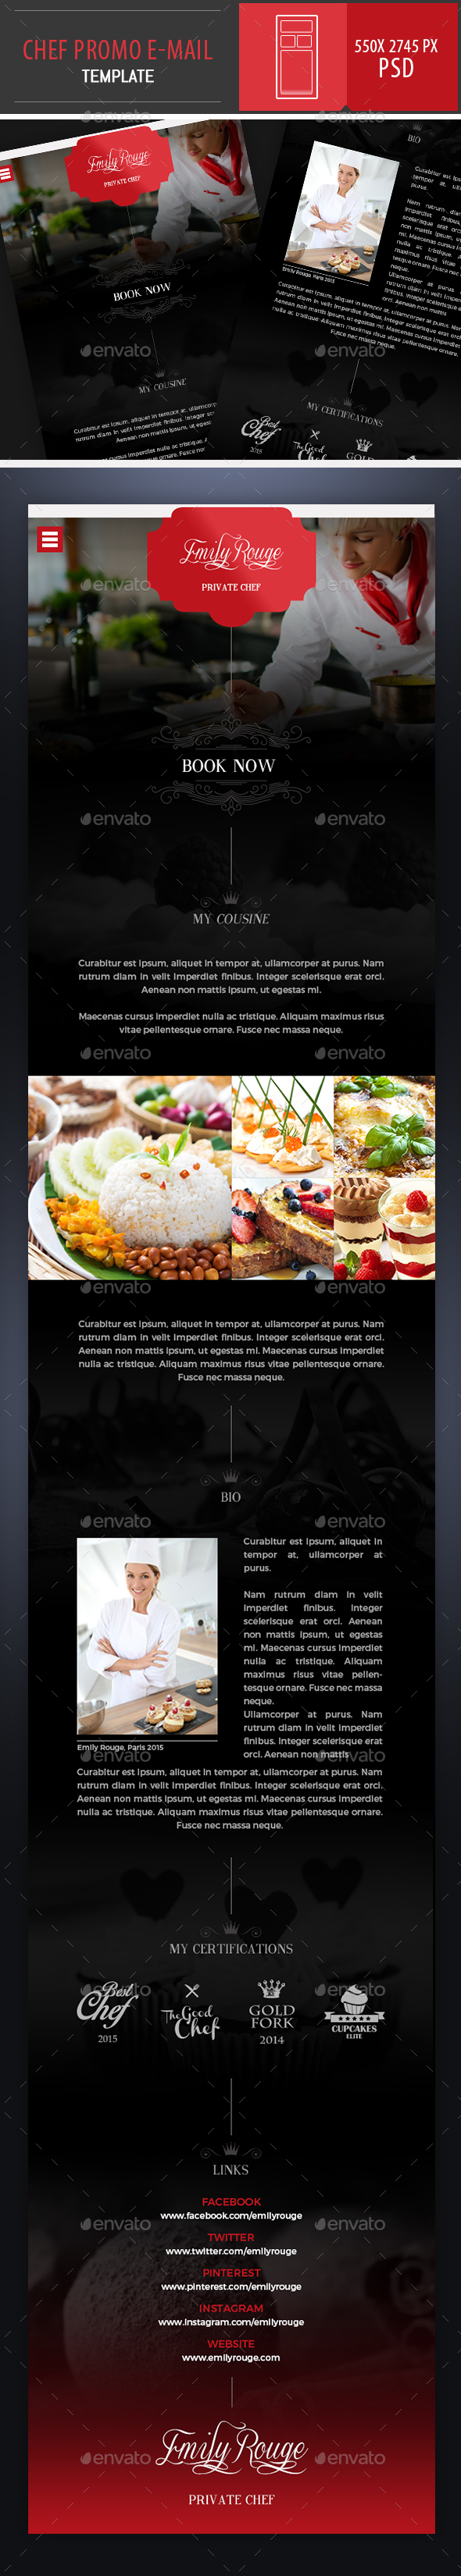 Chef Promo PSD E-mail Template - E-newsletters Web Elements